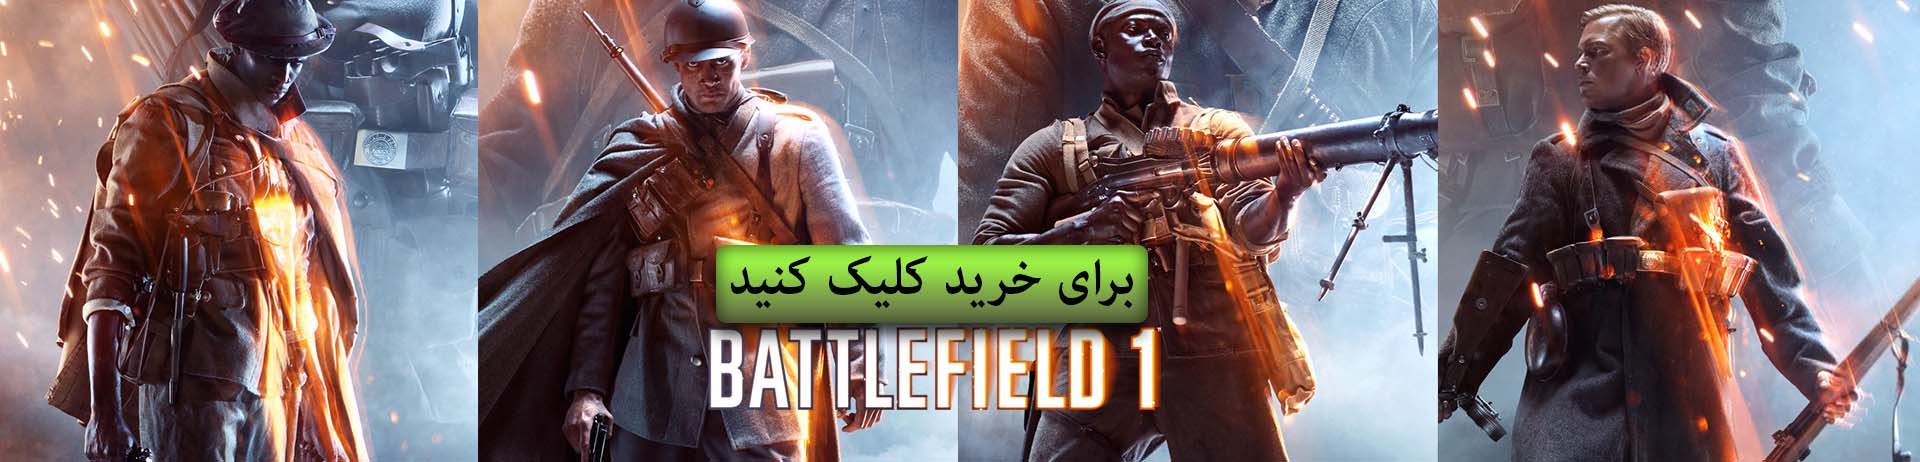 http://gamecdkey.ir/wp-content/uploads/battlefiled1-1.jpg